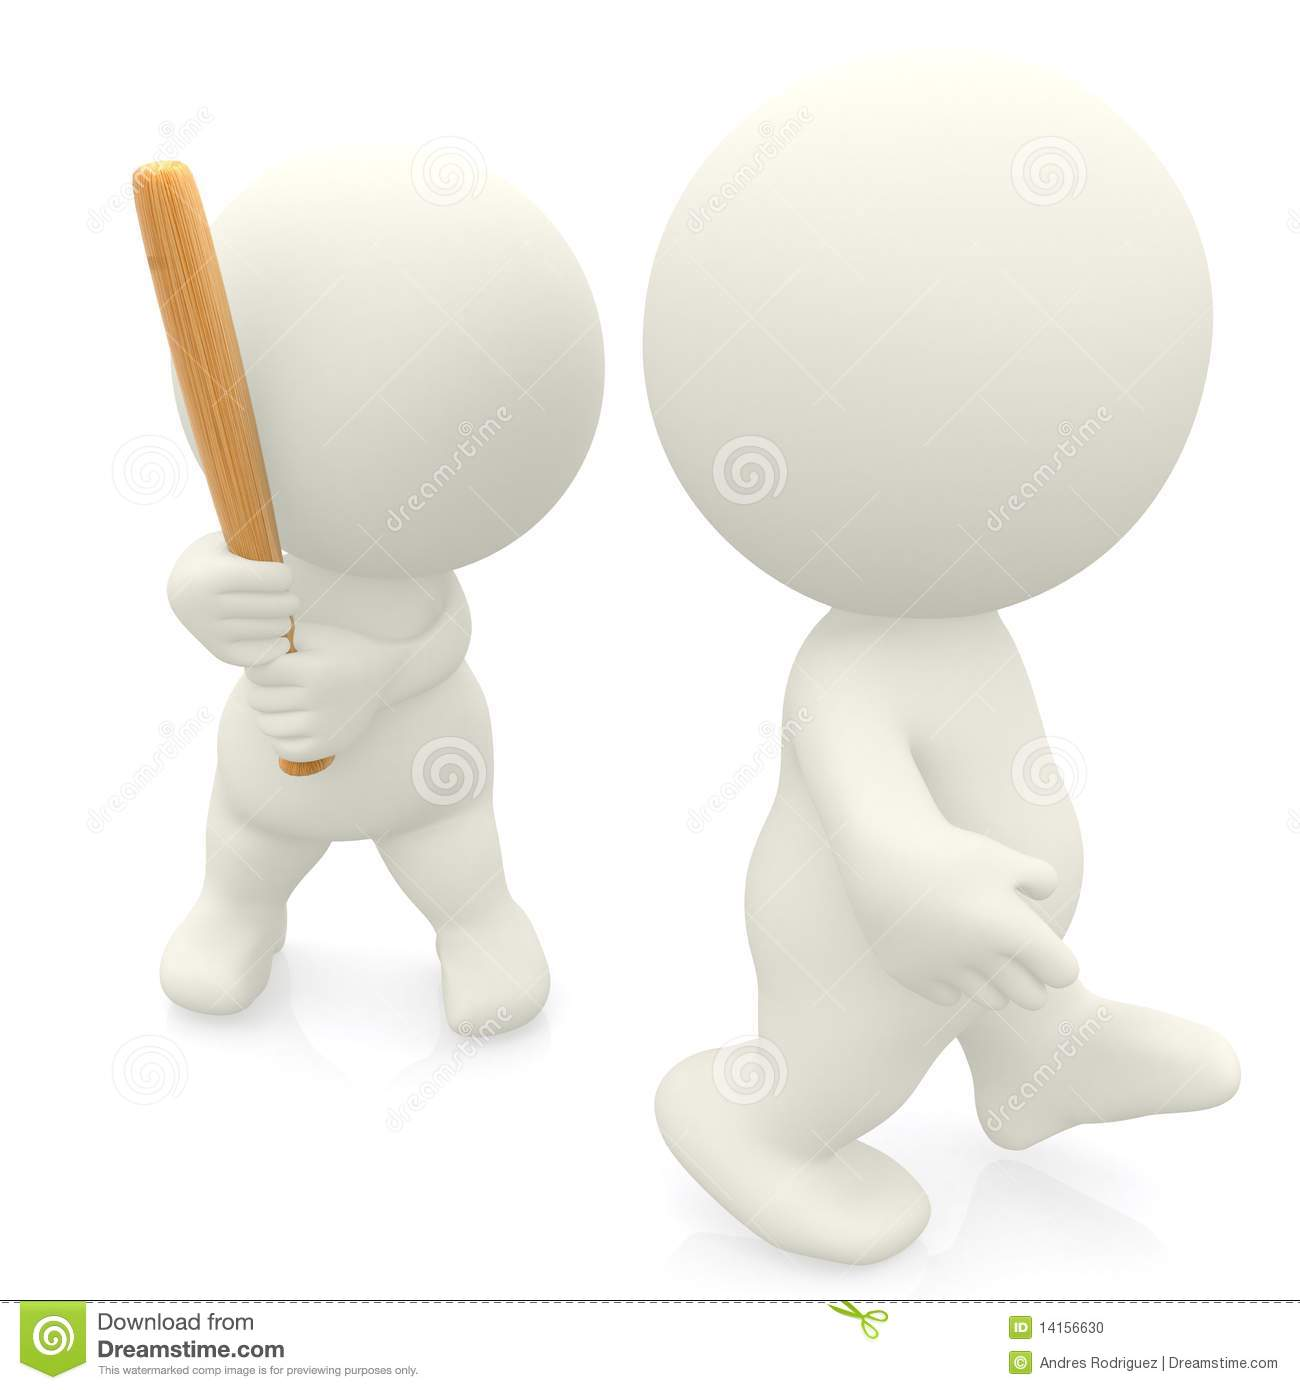 Graphic Stock Free Trial 3d Person Hitting Another One With A Bat Stock